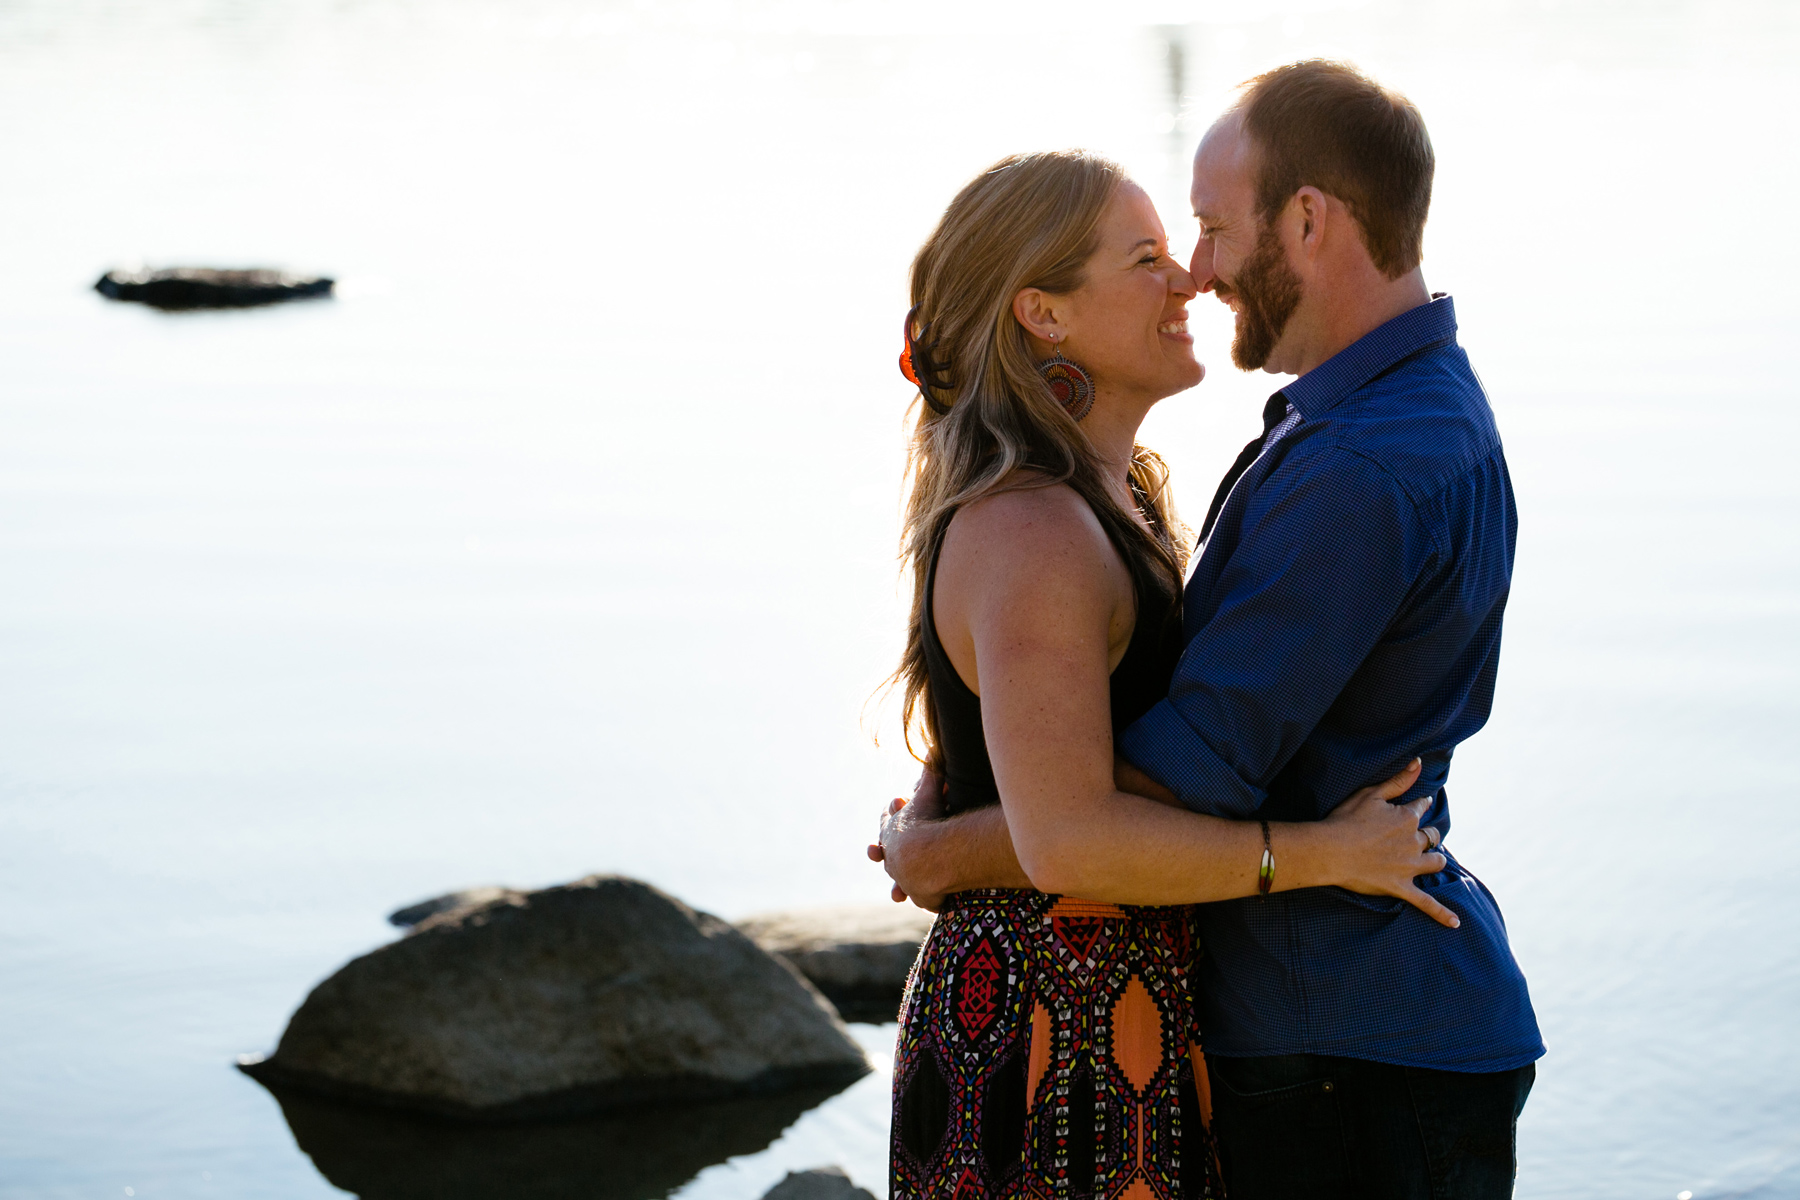 016-fredericton-engagement-photography-kandisebrown-hd2017